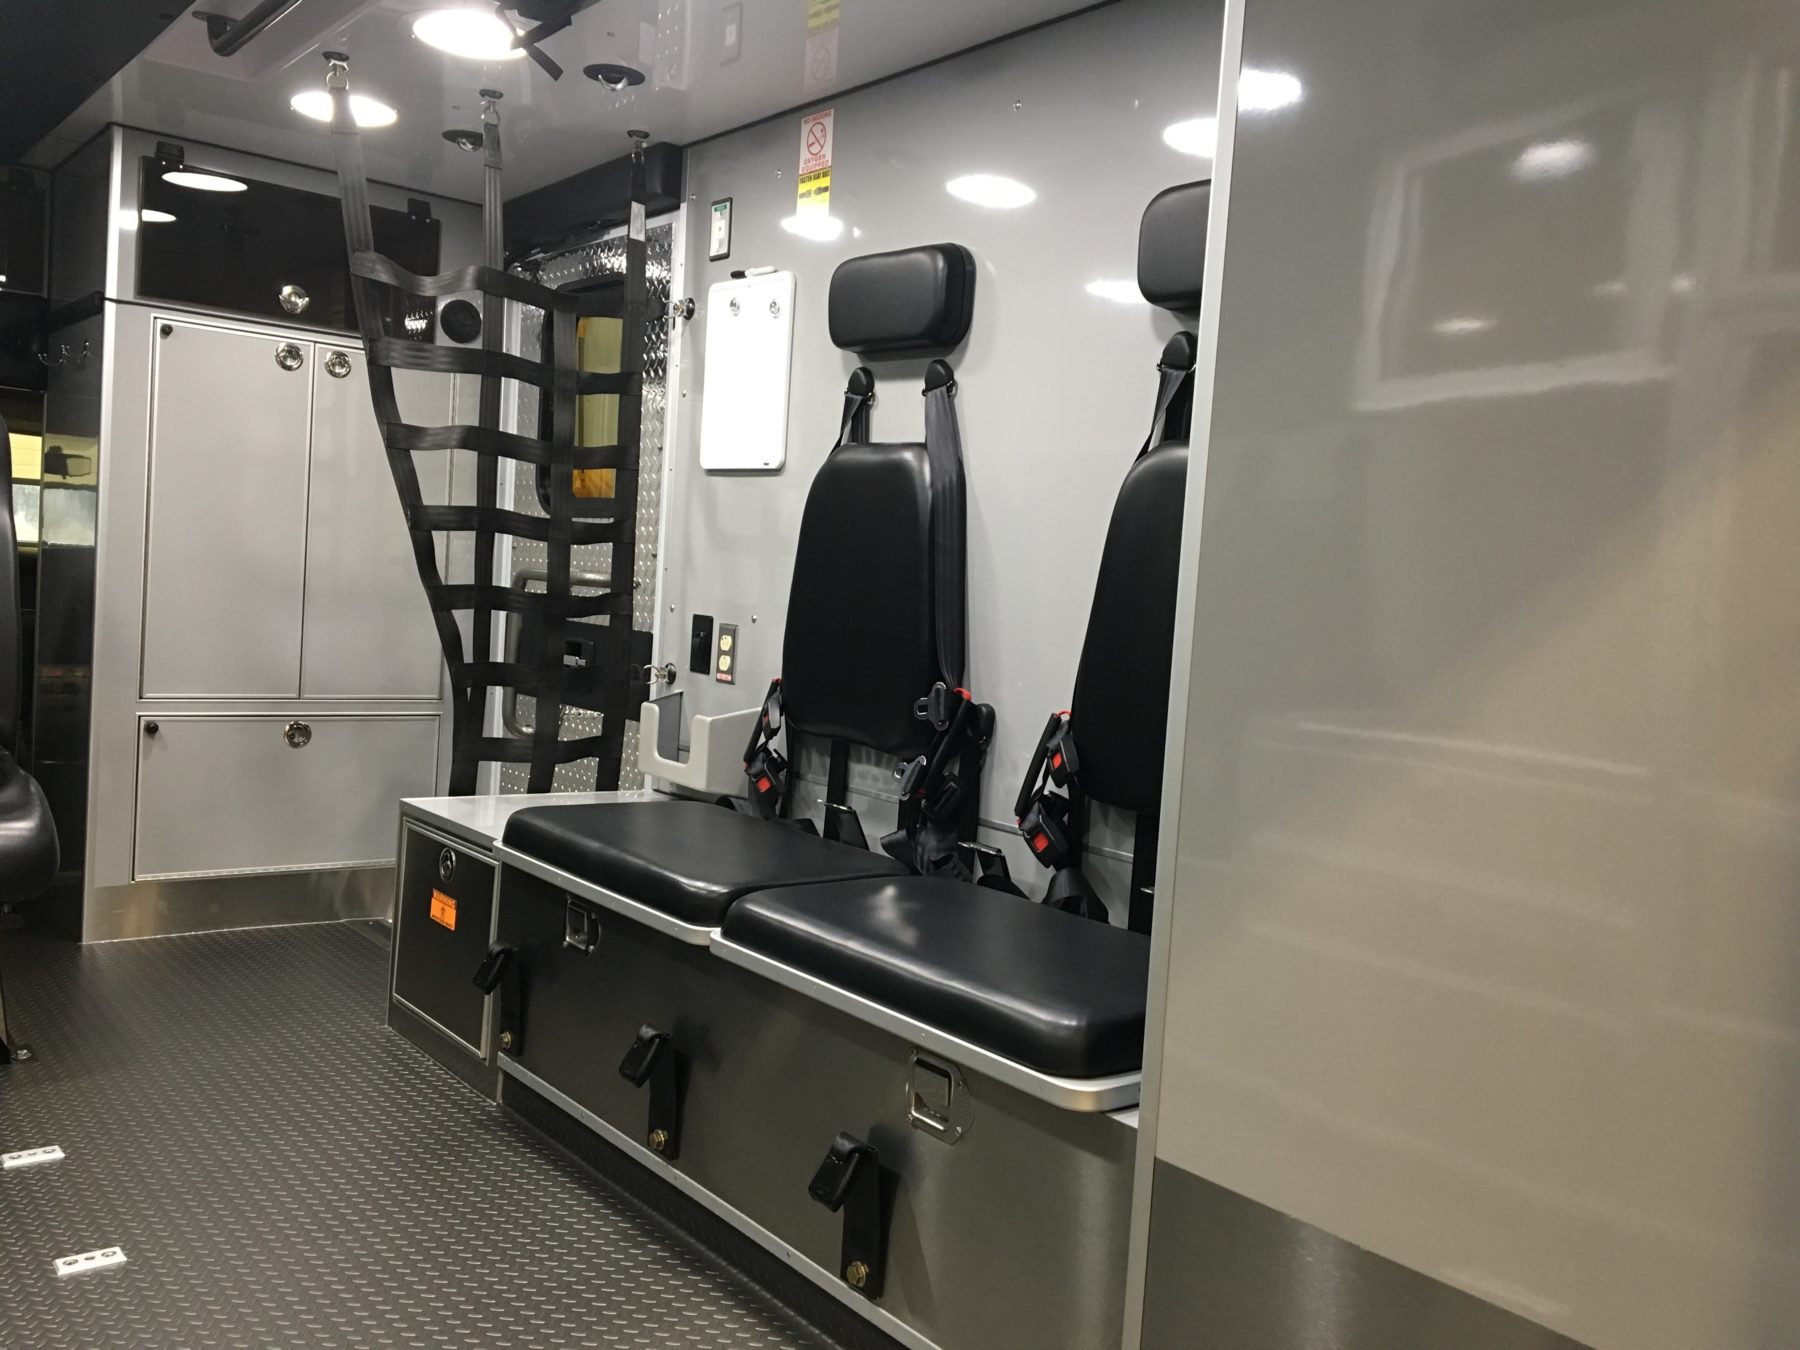 2016 Chevrolet G4500 Type 3 Ambulance For Sale – Picture 5